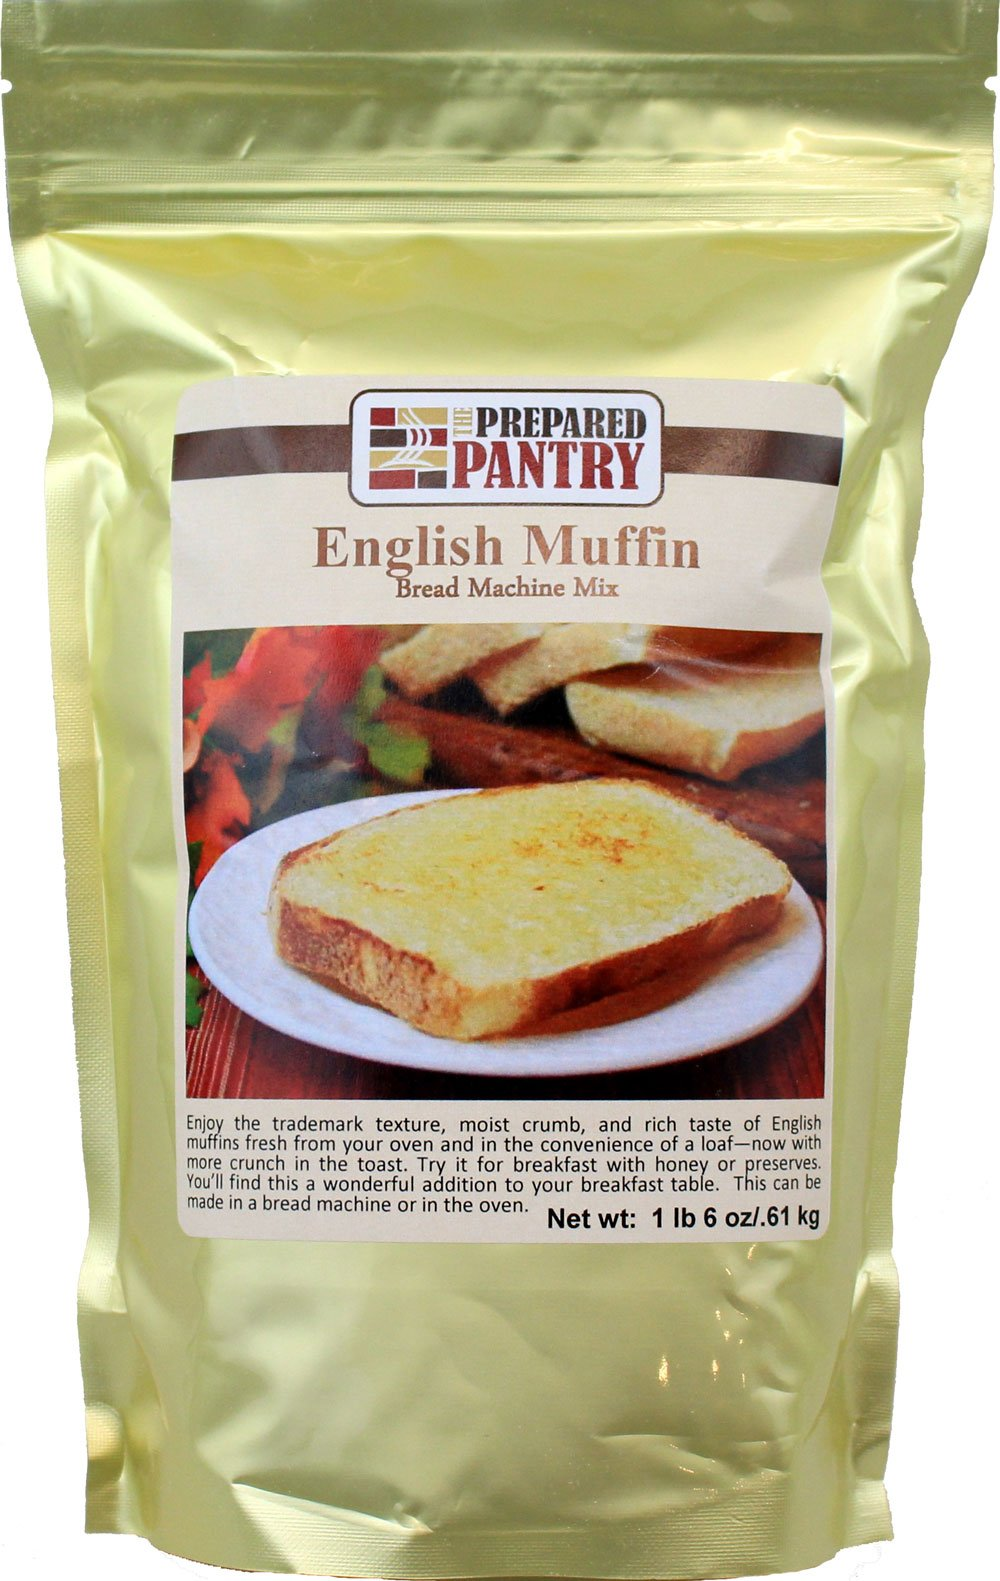 The Prepared Pantry English Muffin Bread Machine Mix, 22 Ounce (Pack of 20) by The Prepared Pantry (Image #1)